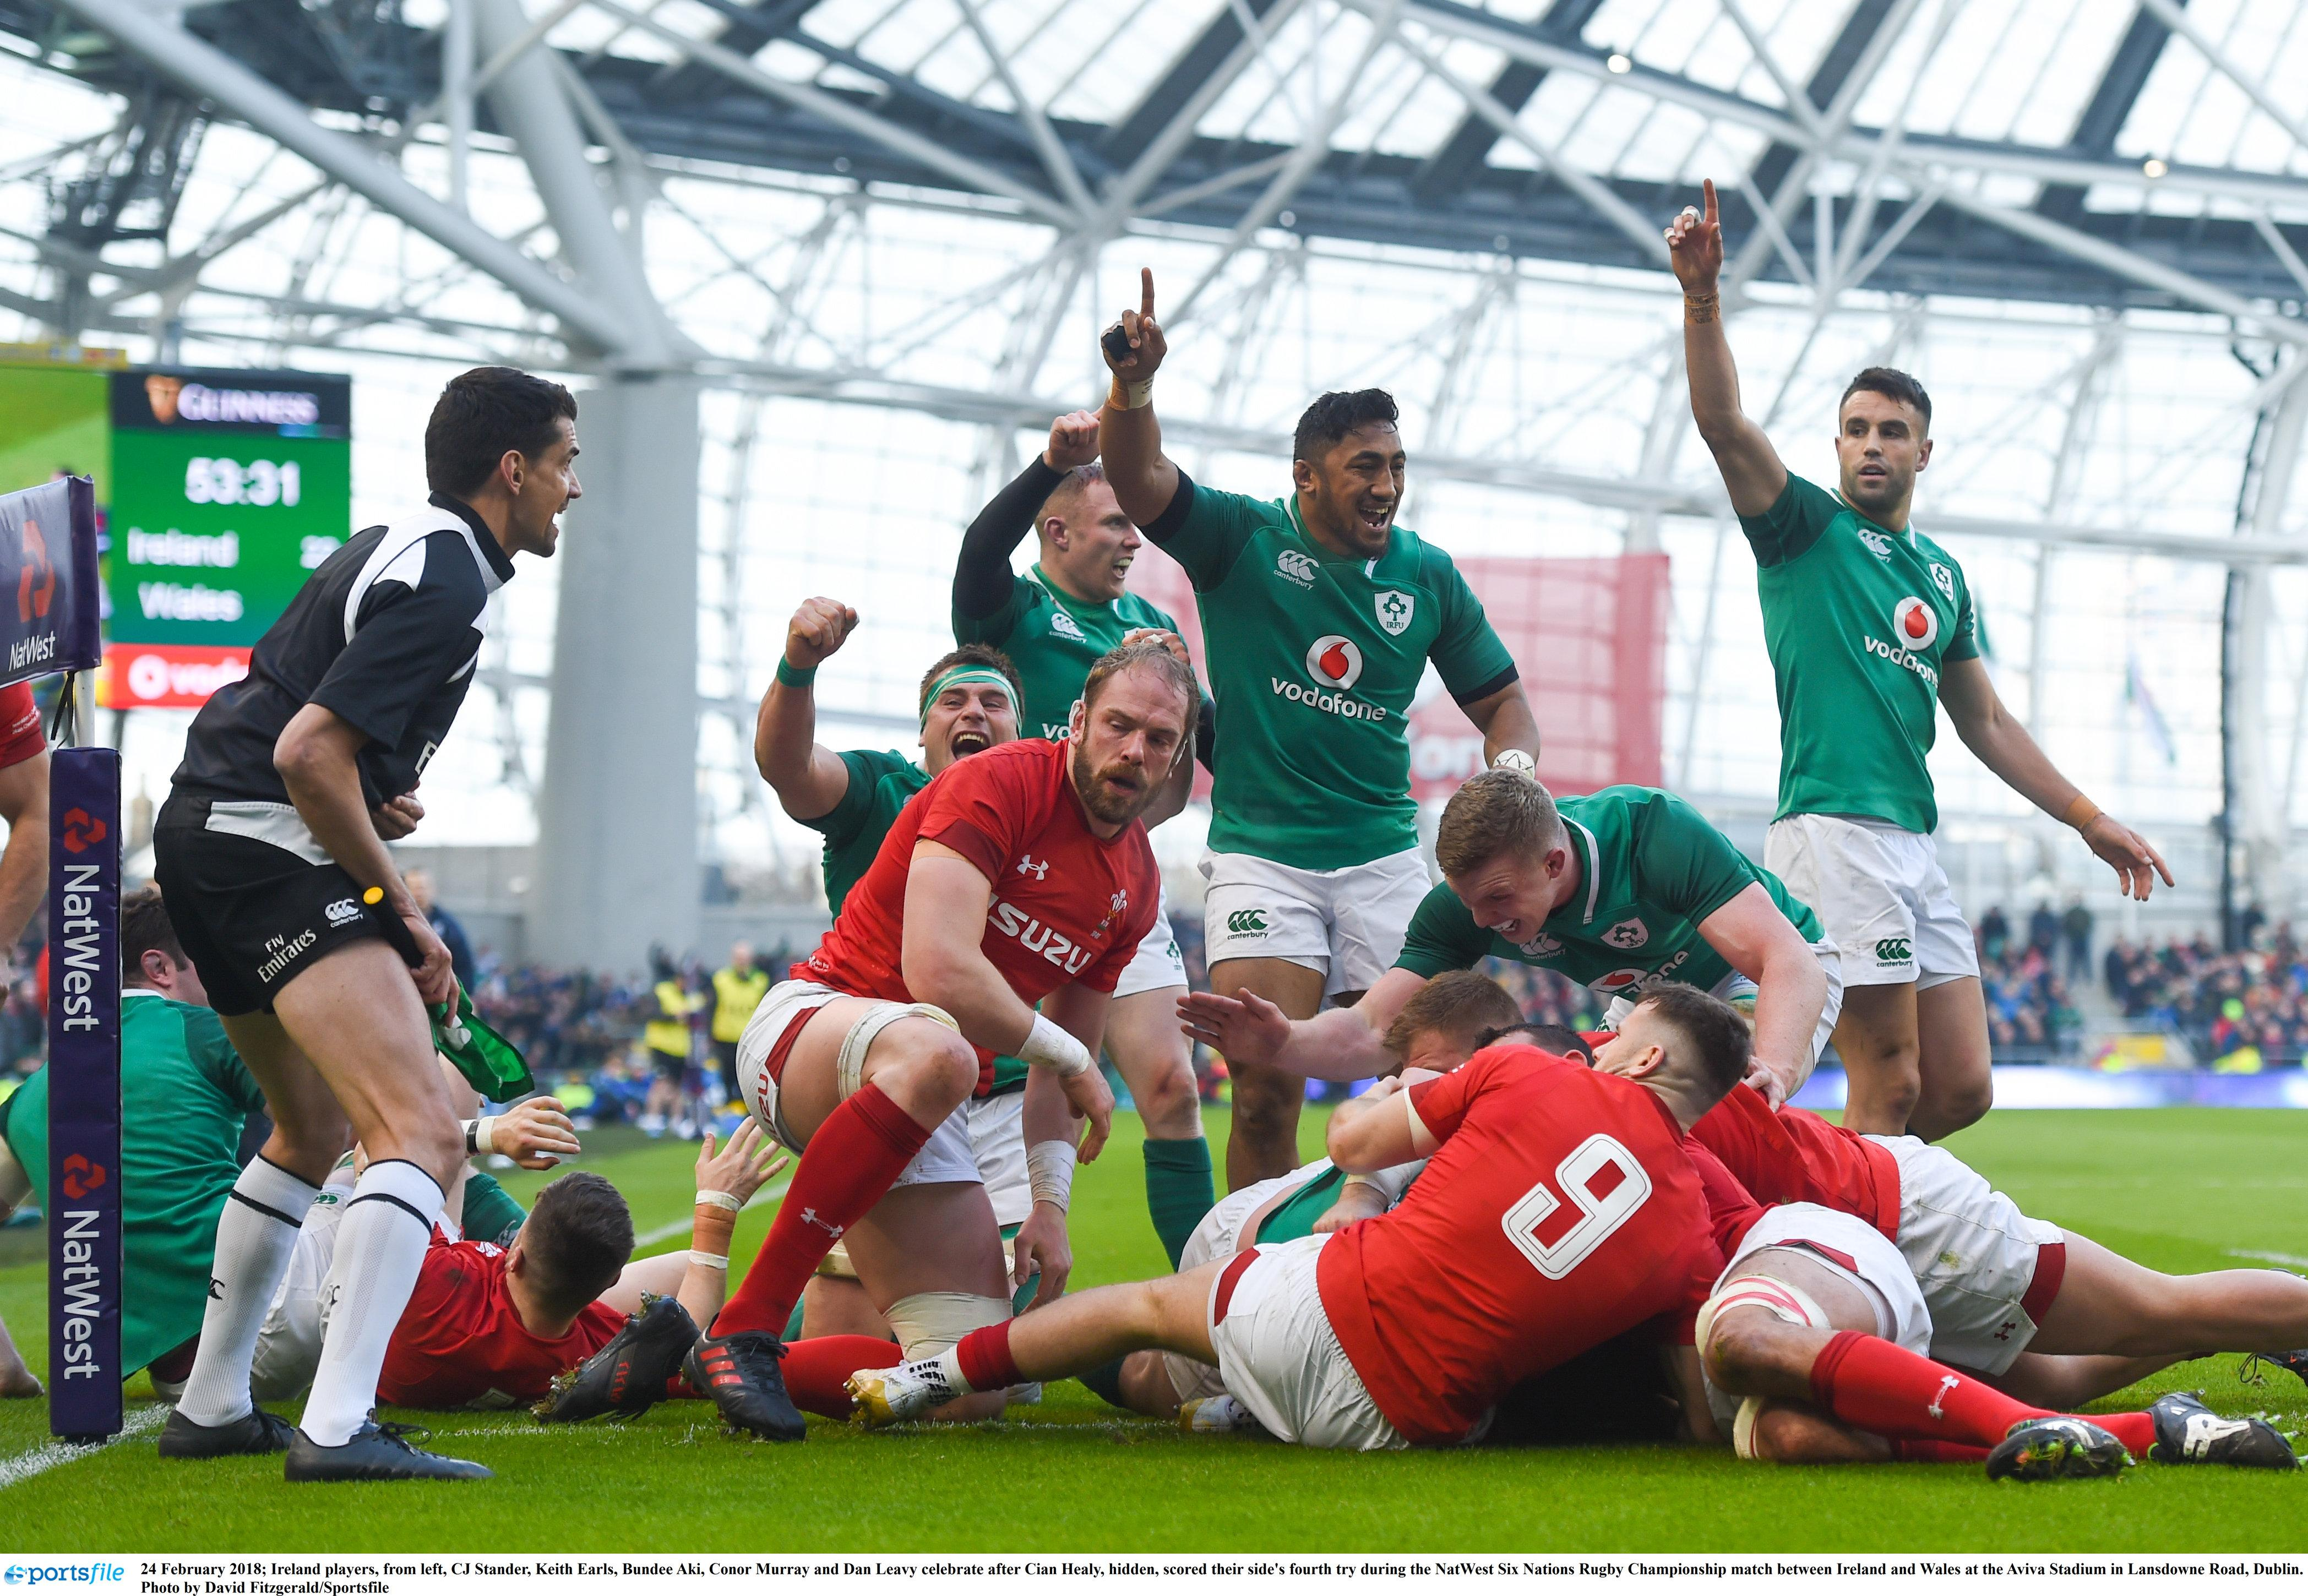 Ireland look top dogs but Wales are not far behind